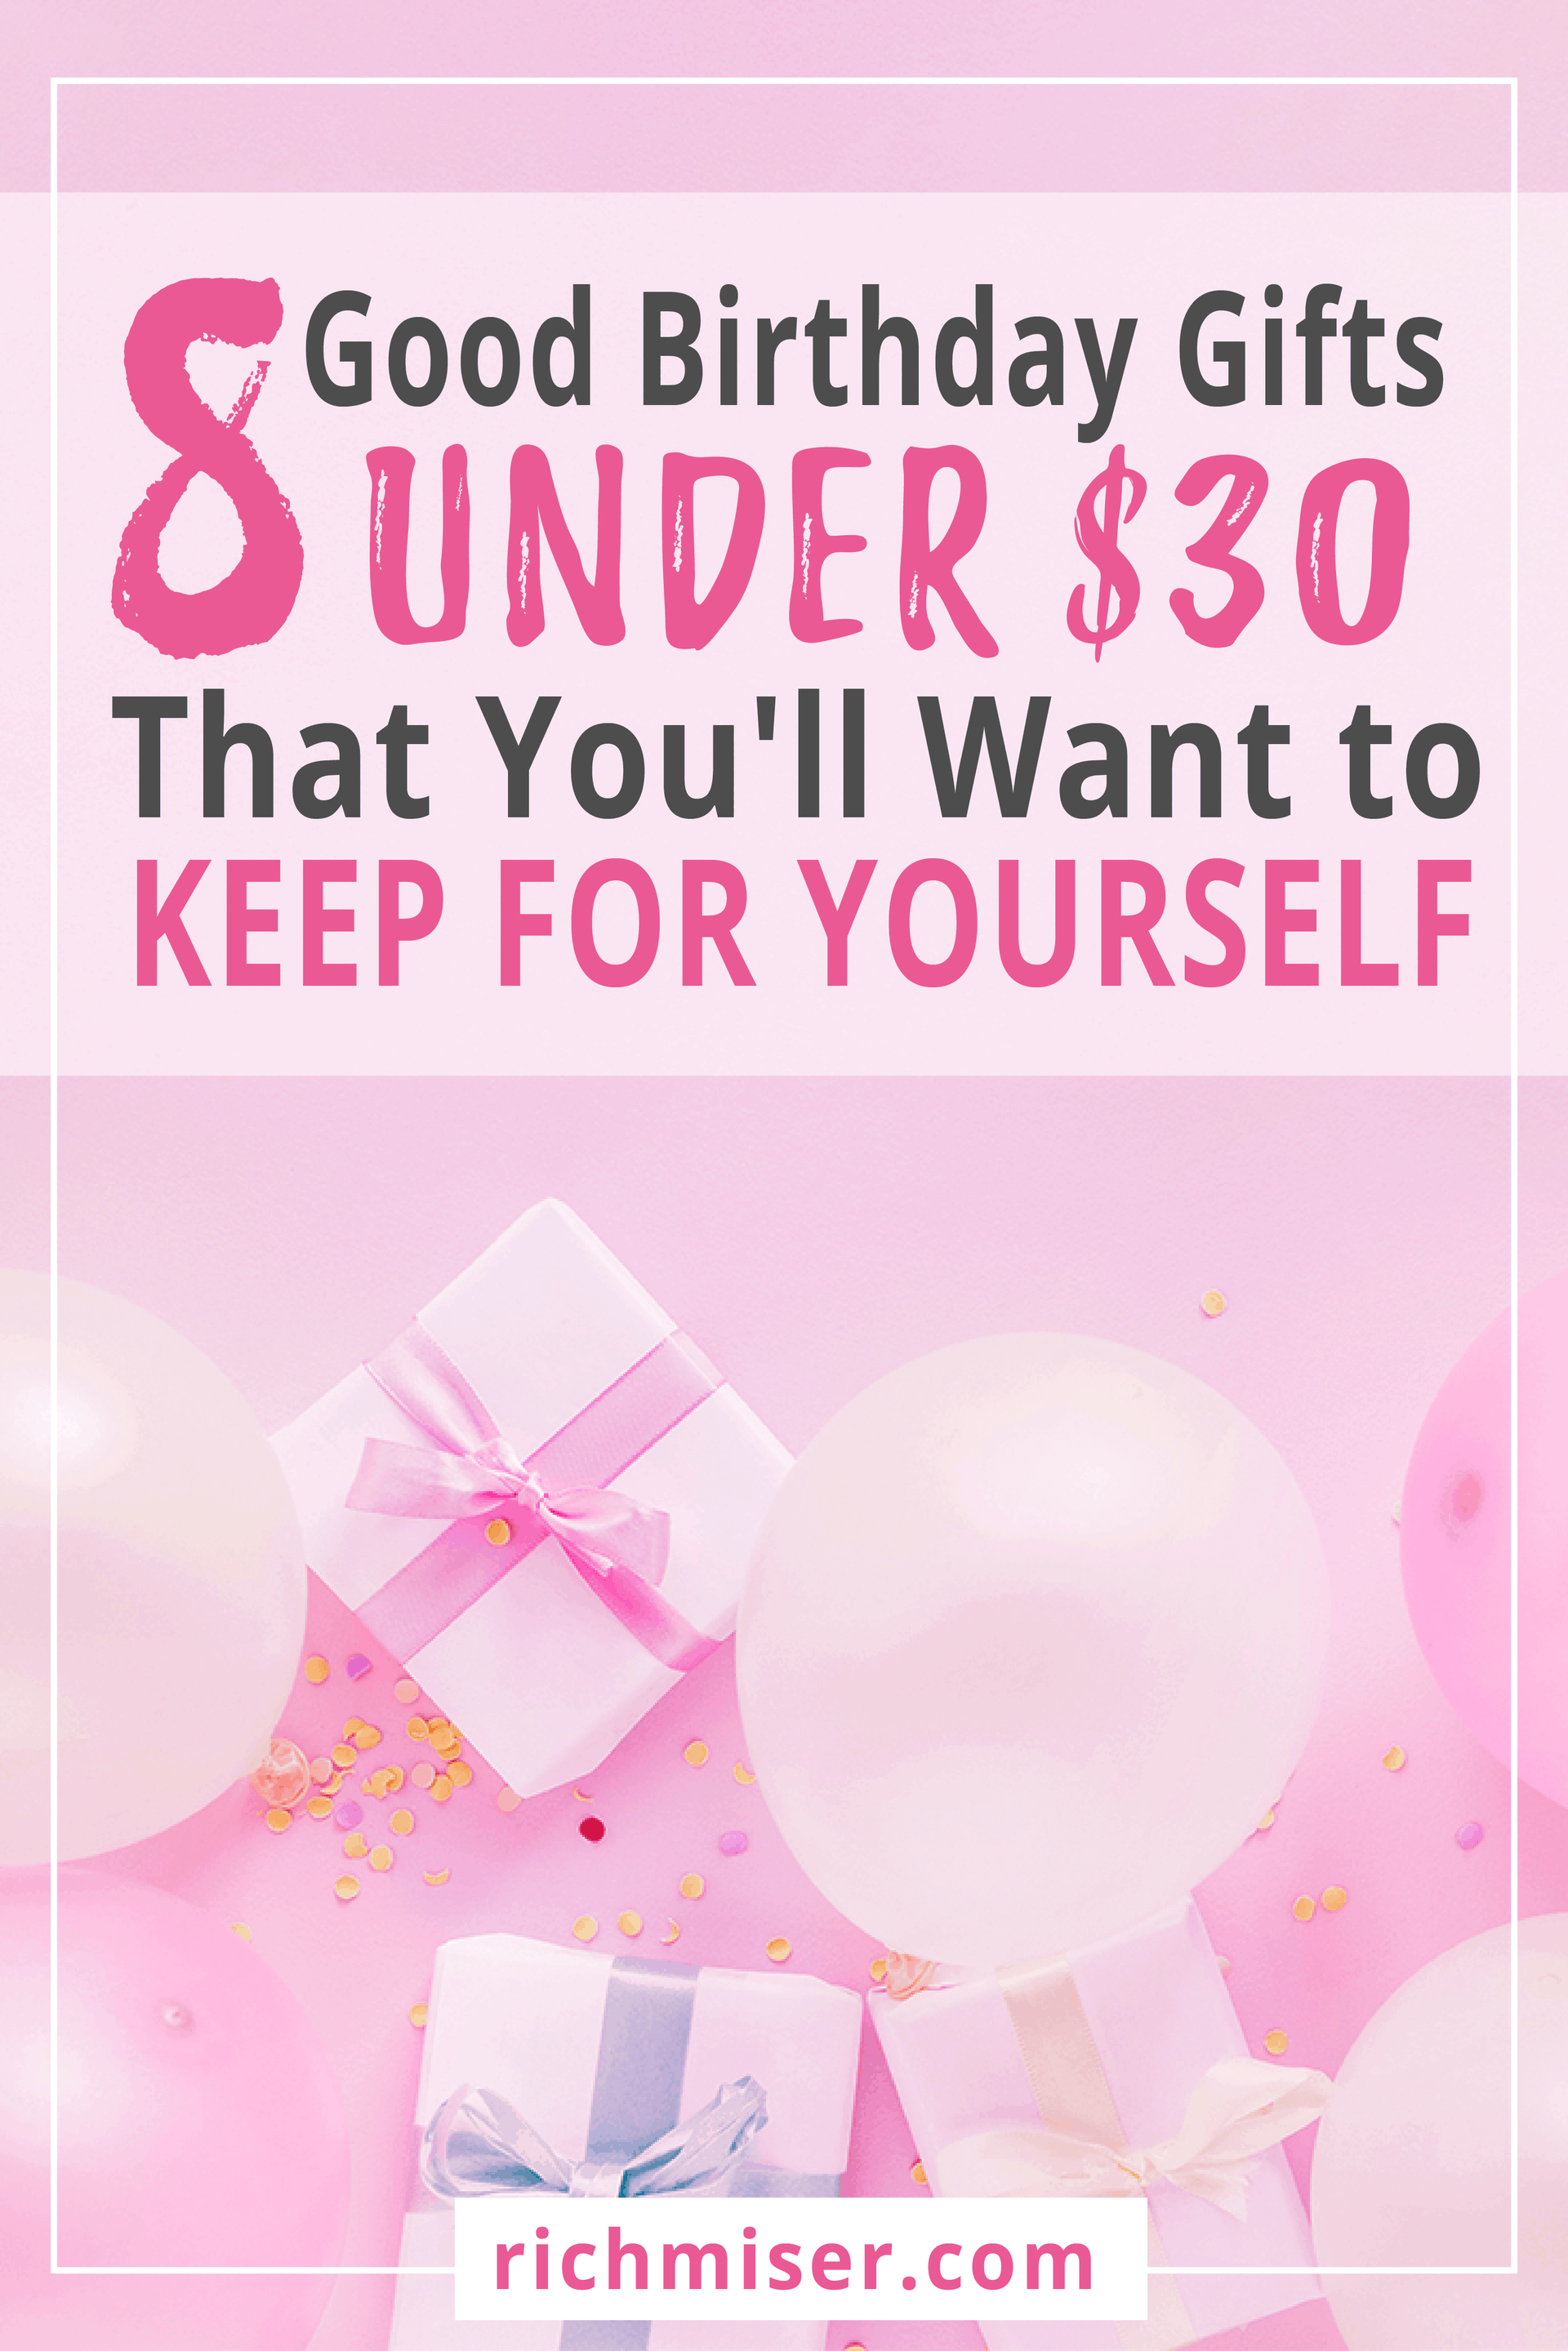 8 Good Birthday Gifts Under $30 That You'll Want to Keep for Yourself